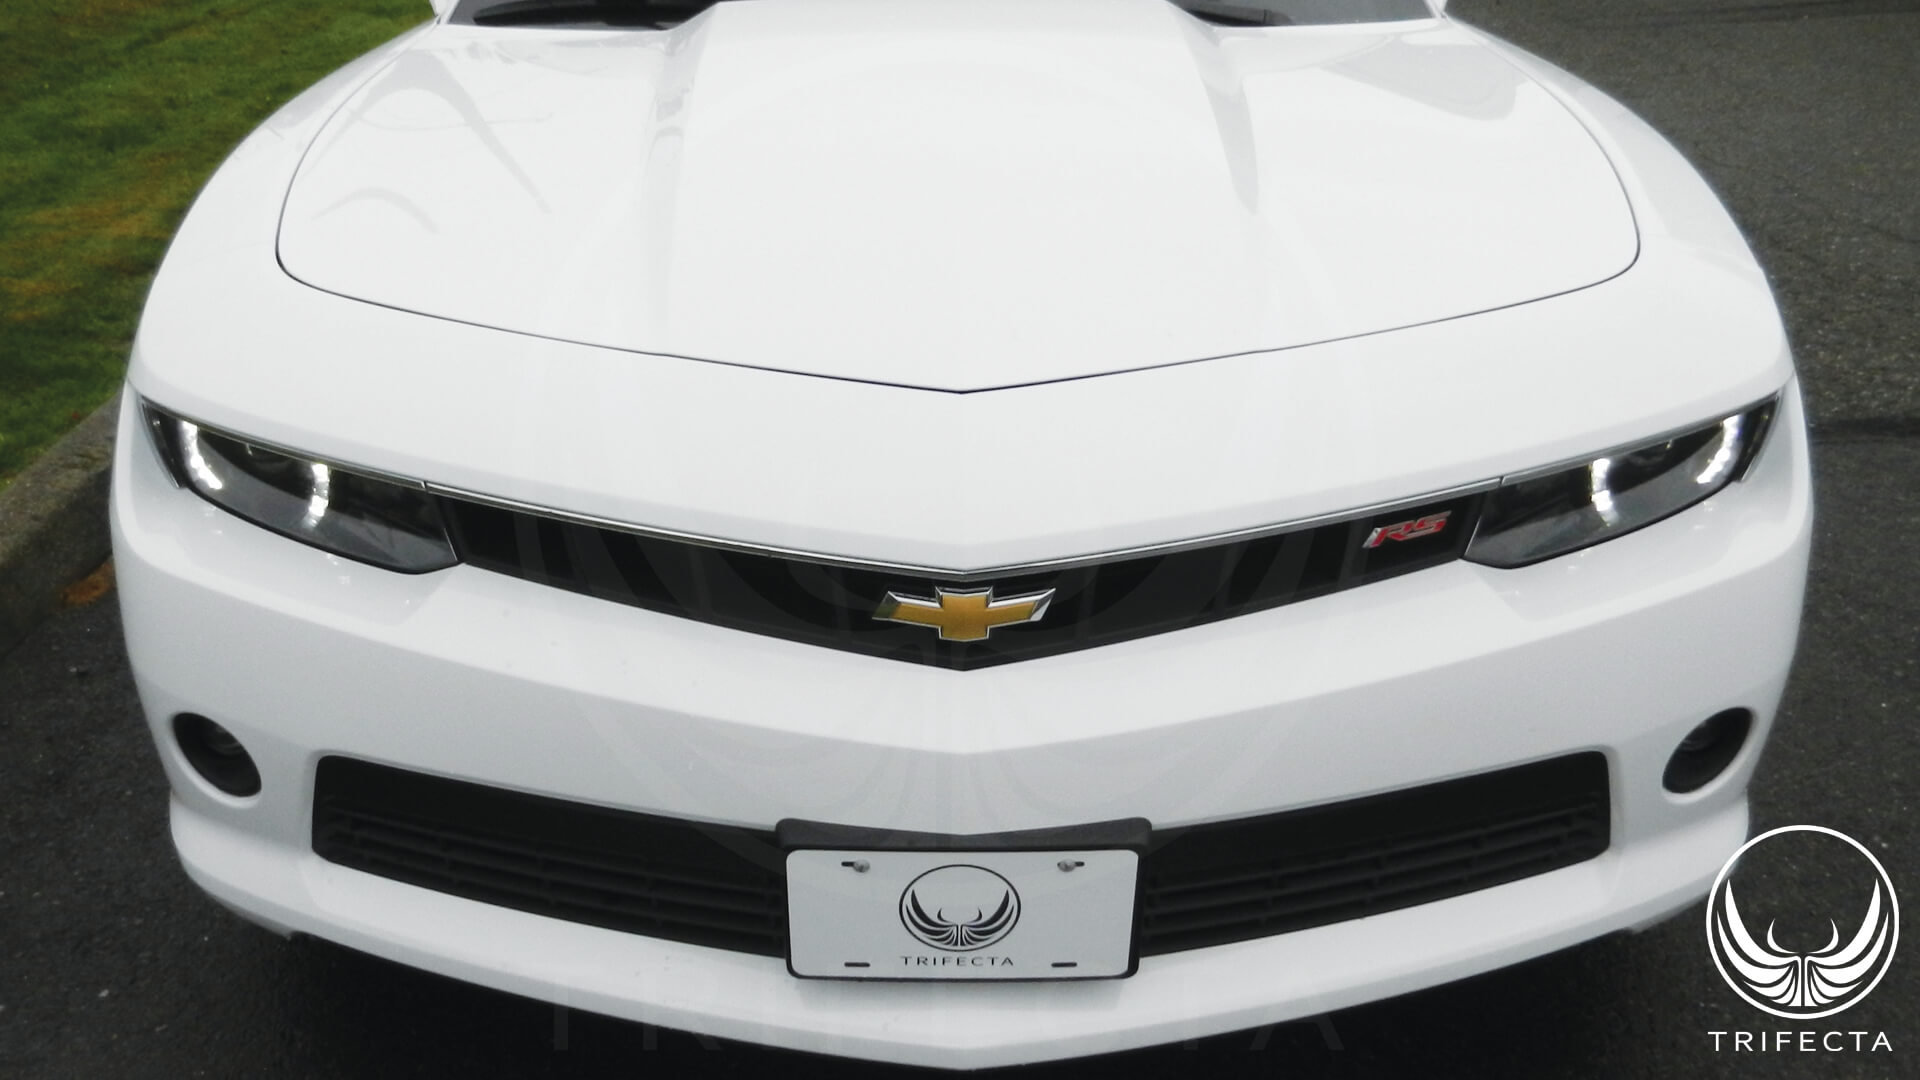 Product Review: 2010--2015 Chevrolet Camaro - 3.6L